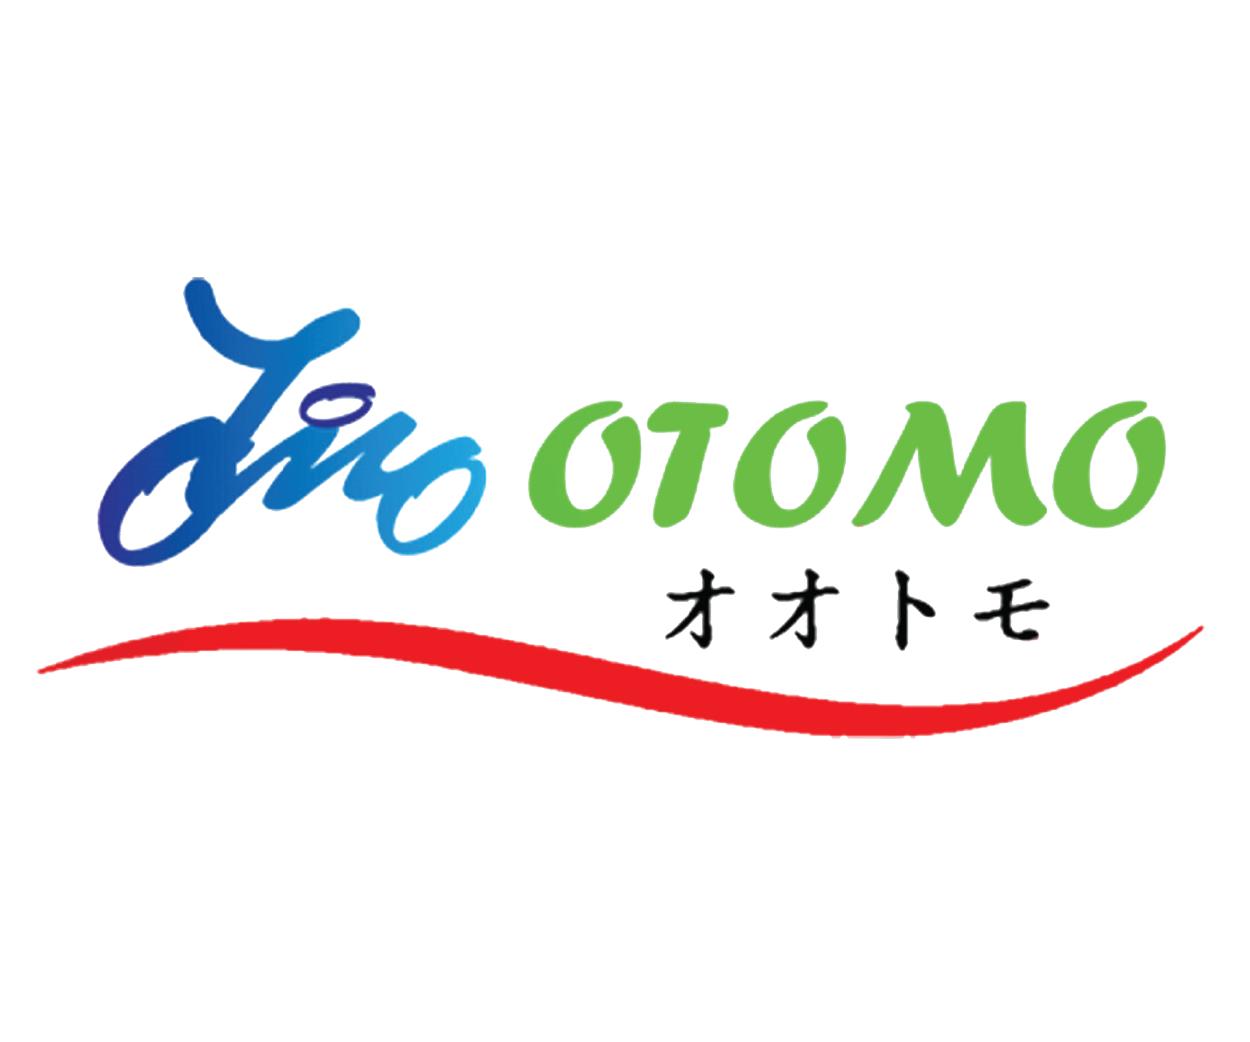 Clearance of Otomo